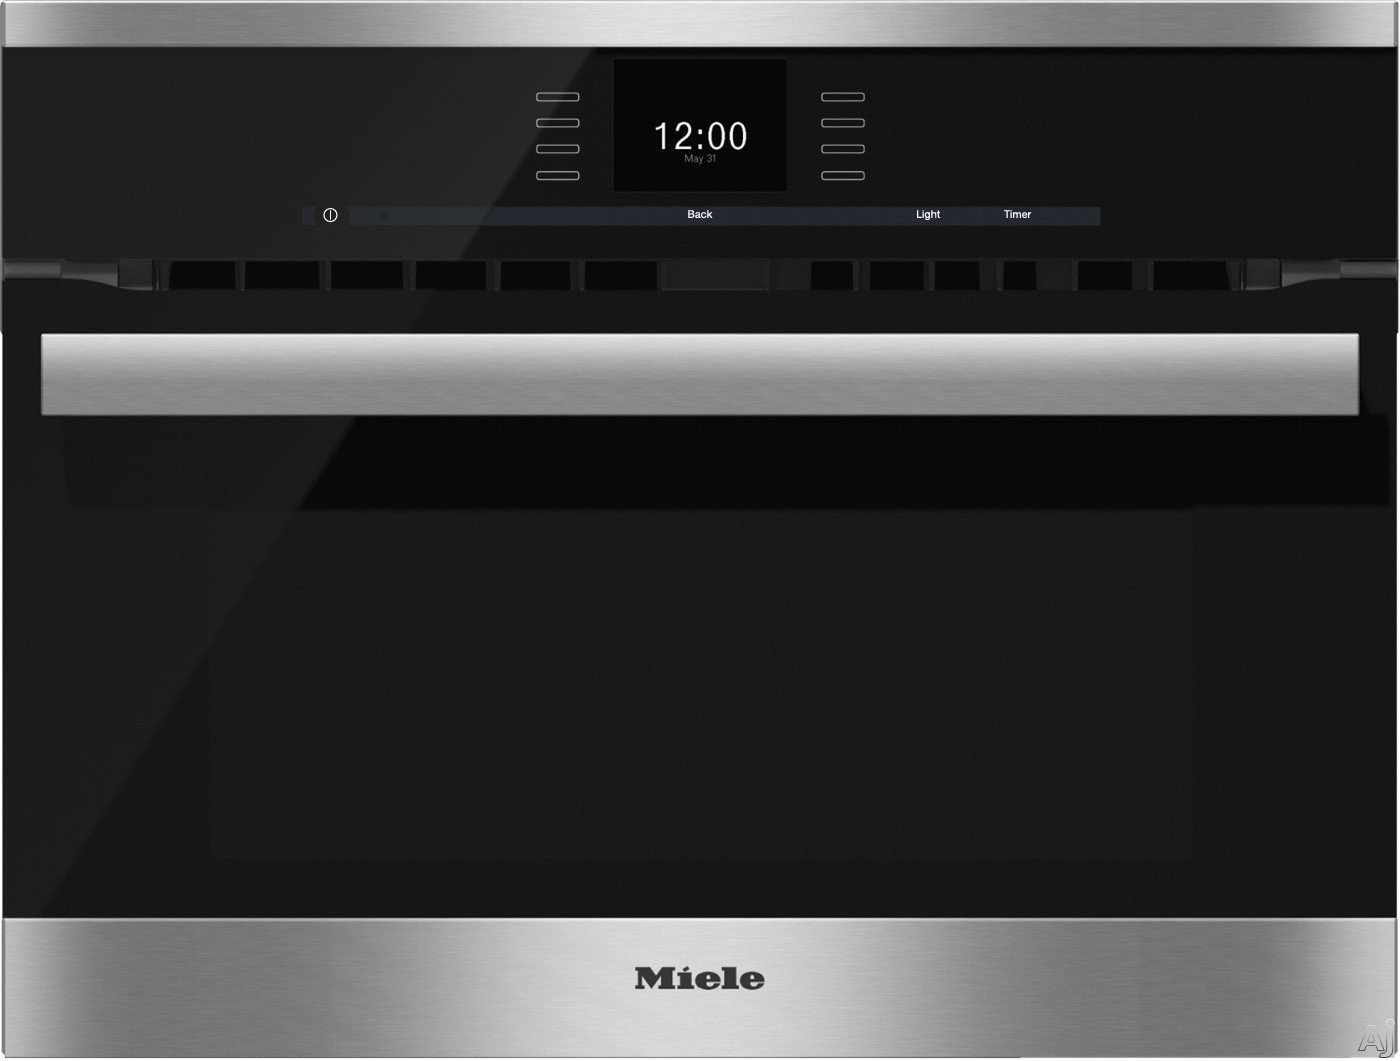 Miele PureLine SensorTronic Series H6600BM 24 Inch Single Electric Speed Oven with Convection Cooking, 2,200 Watt Microwave, SensorTronic Controls, MasterChef Programs, Temperature Probe, PerfectClean Finish and Silhouette Handle: Clean Touch Steel